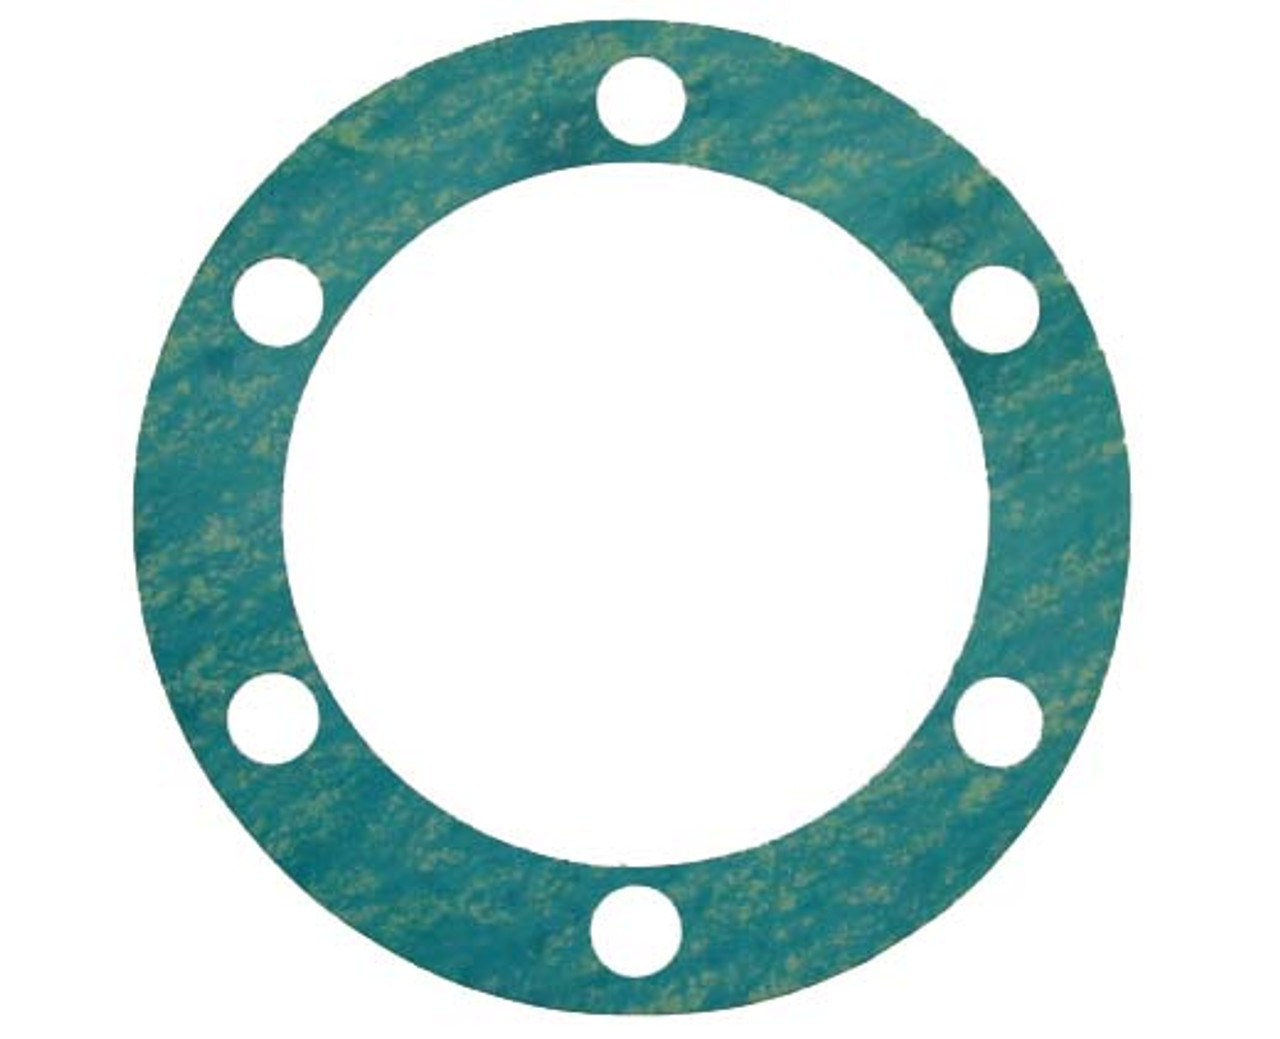 Torque King 6 Bolt Front Hub Gasket for Dana 44, and Ford Dana 60 Front Axles TK40573